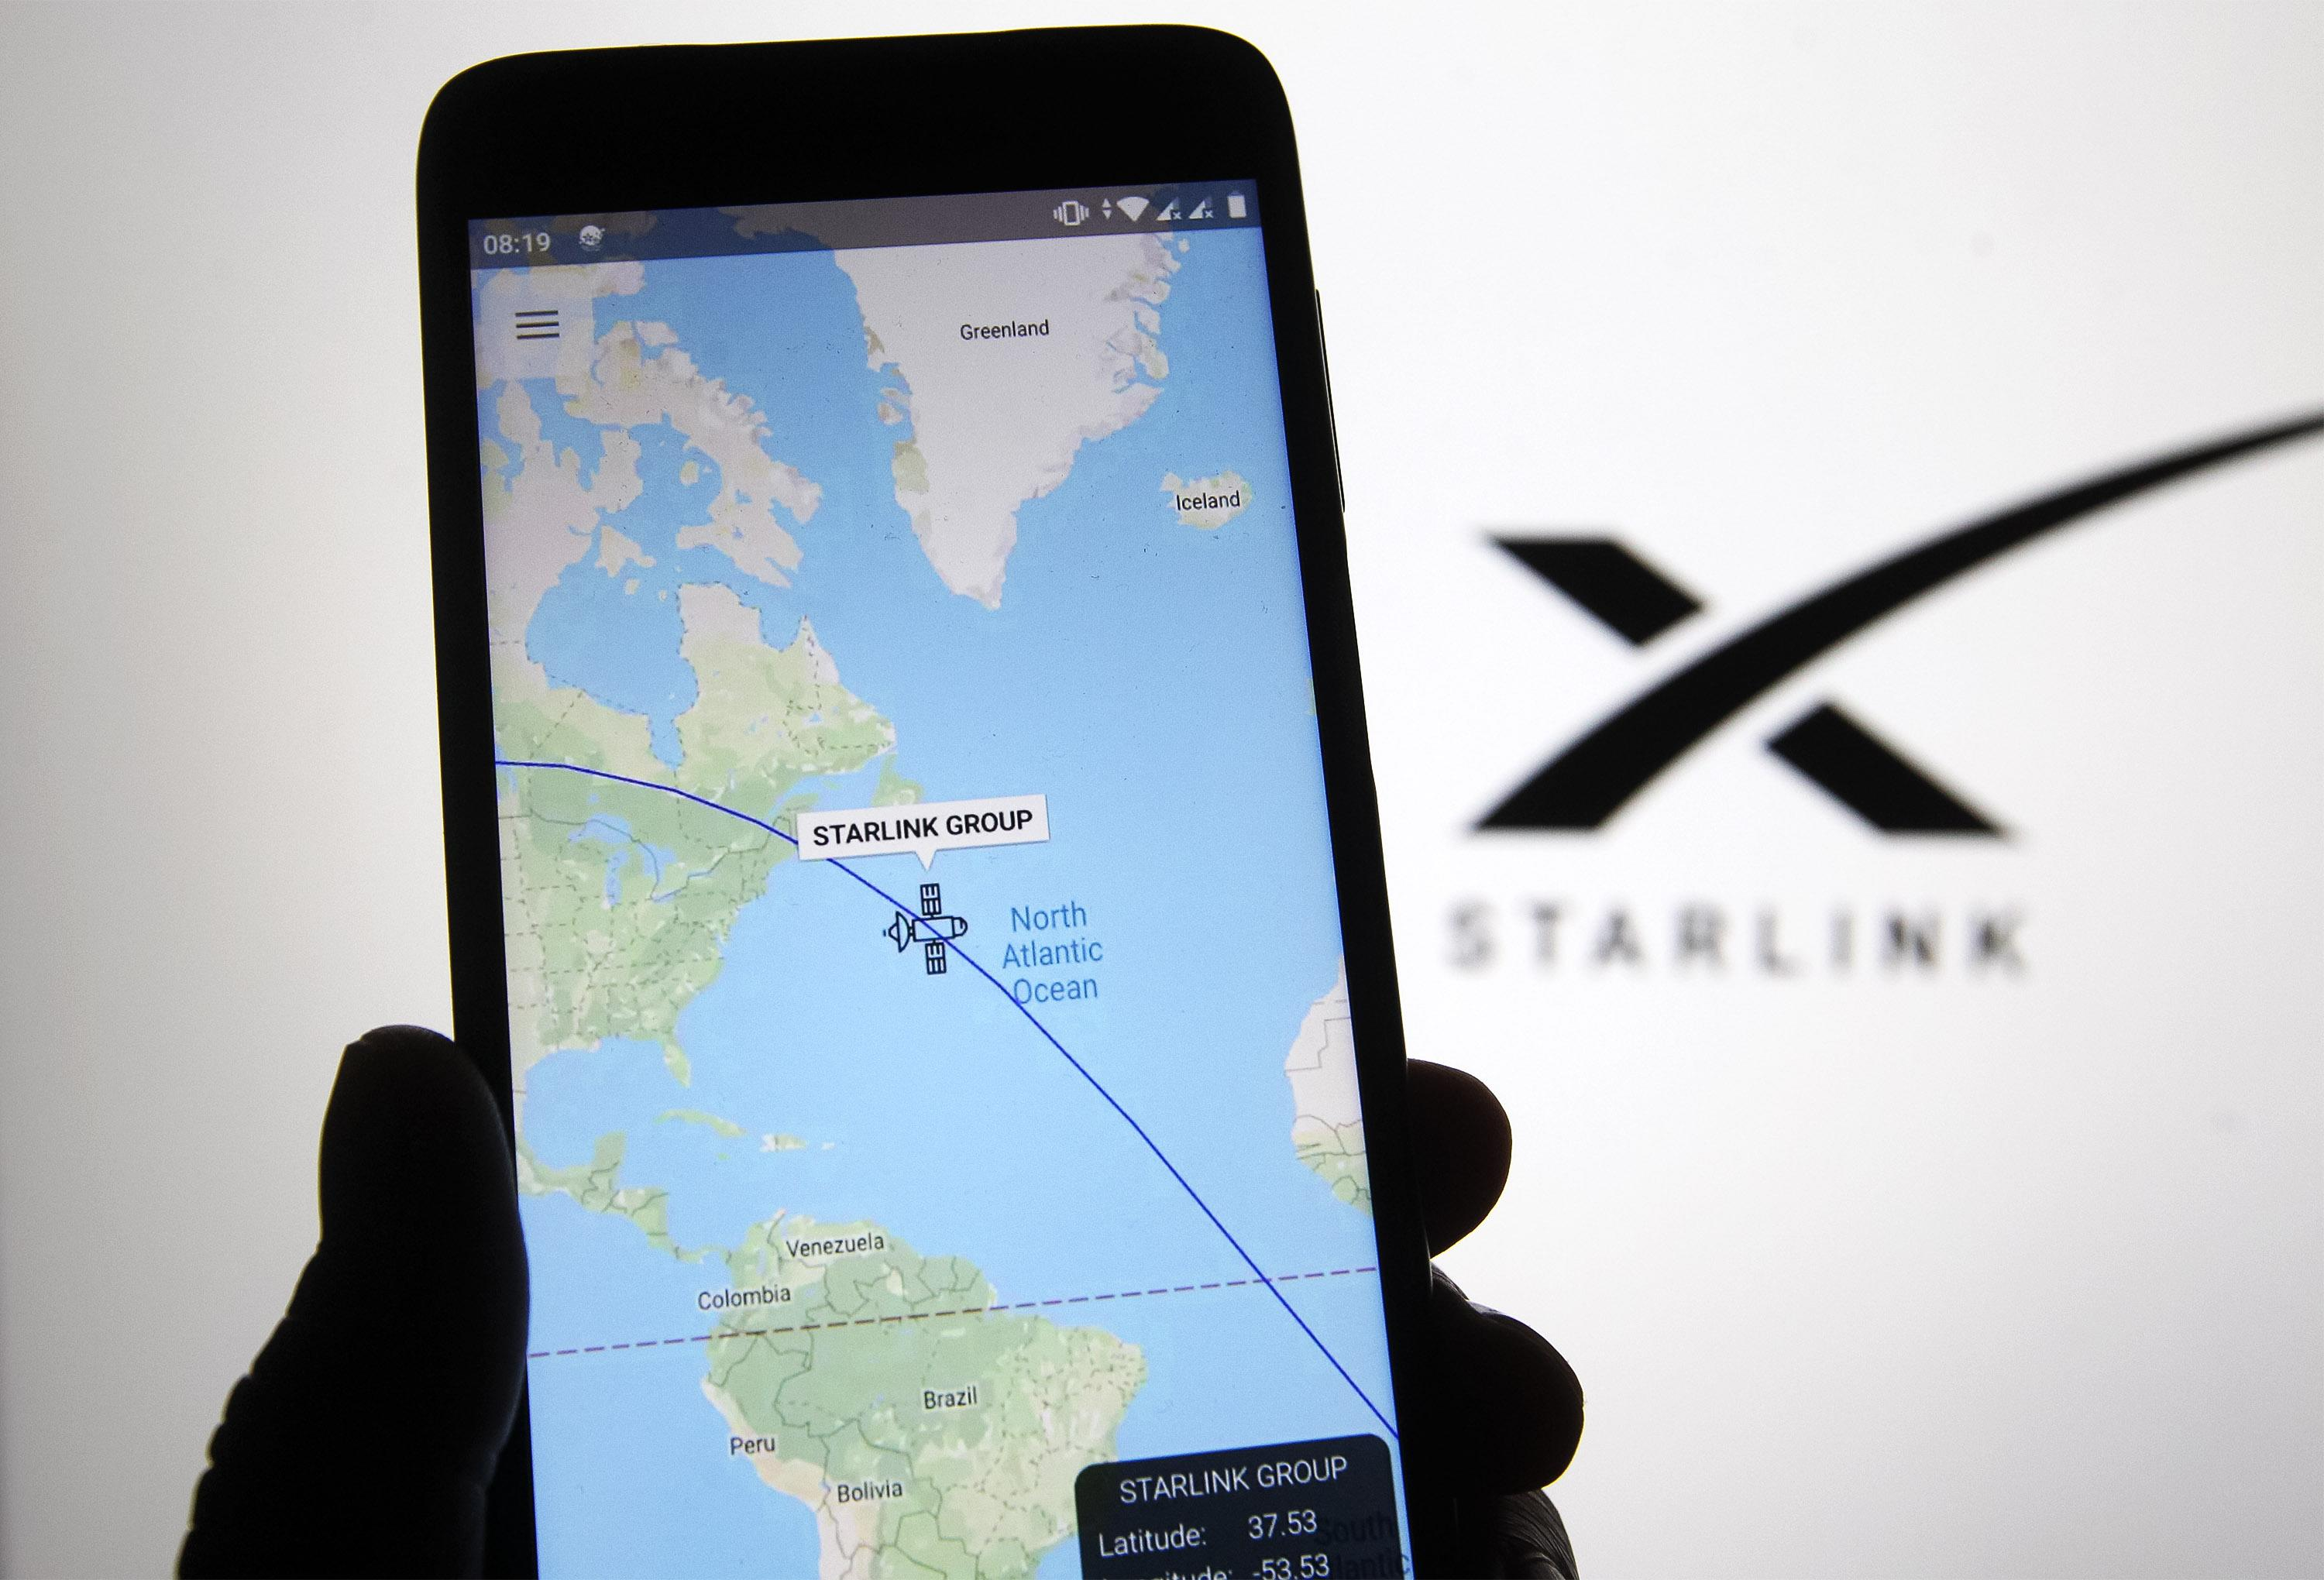 SpaceX opens Starlink satellite internet pre-orders to the public | Engadget